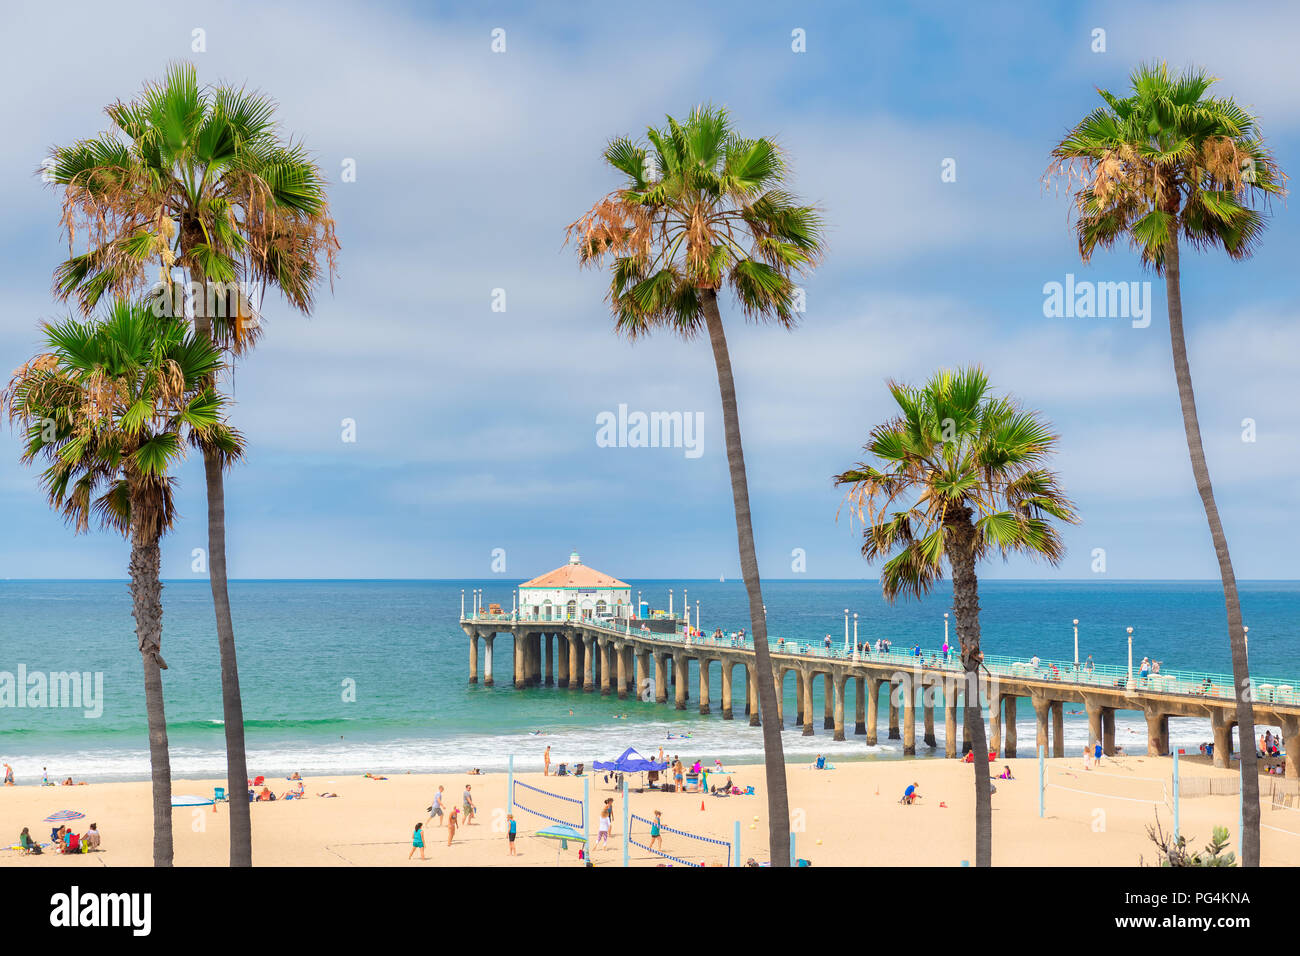 Palm trees at Manhattan Beach. Fashion travel and tropical beach concept. - Stock Image